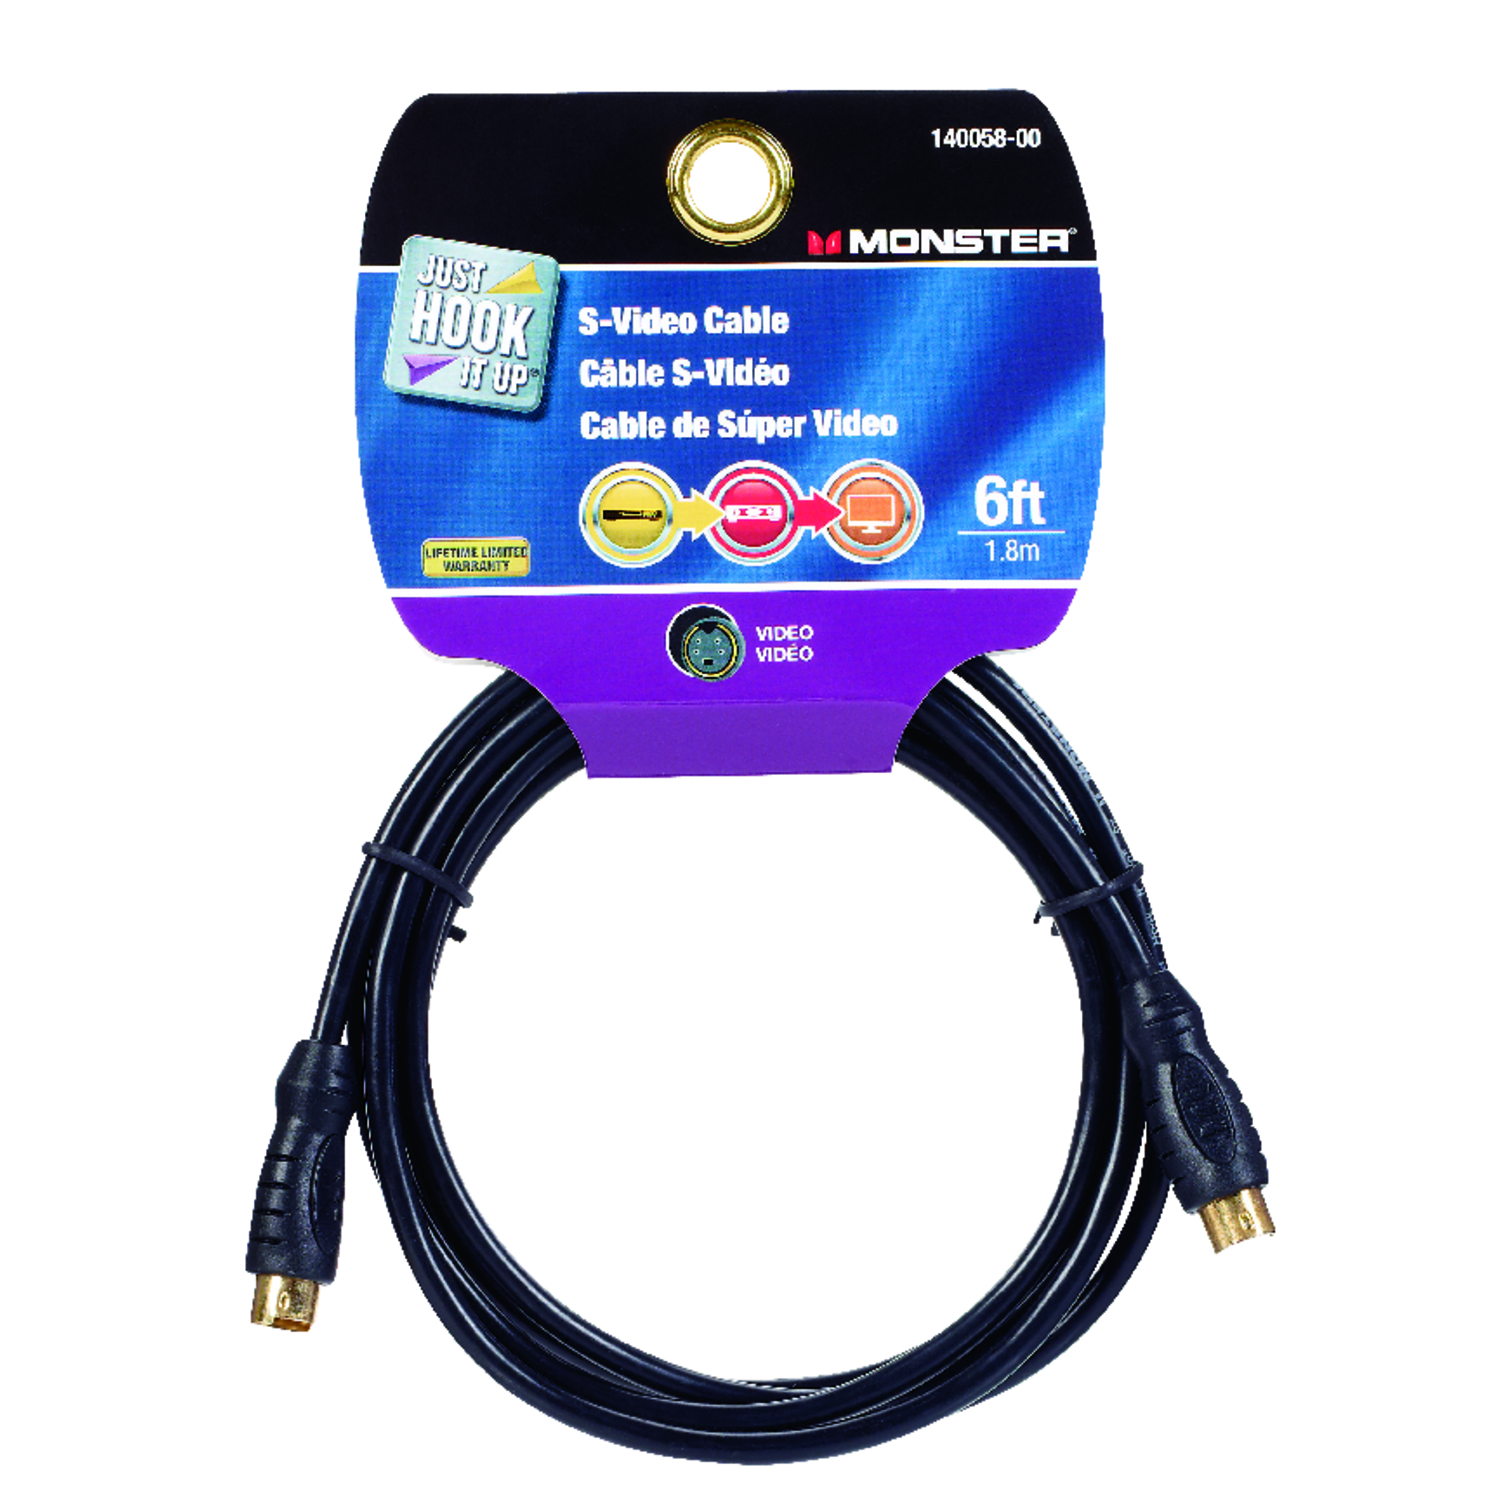 Monster Cable  Just Hook It Up  6 ft. L S-Video Cable  RCA